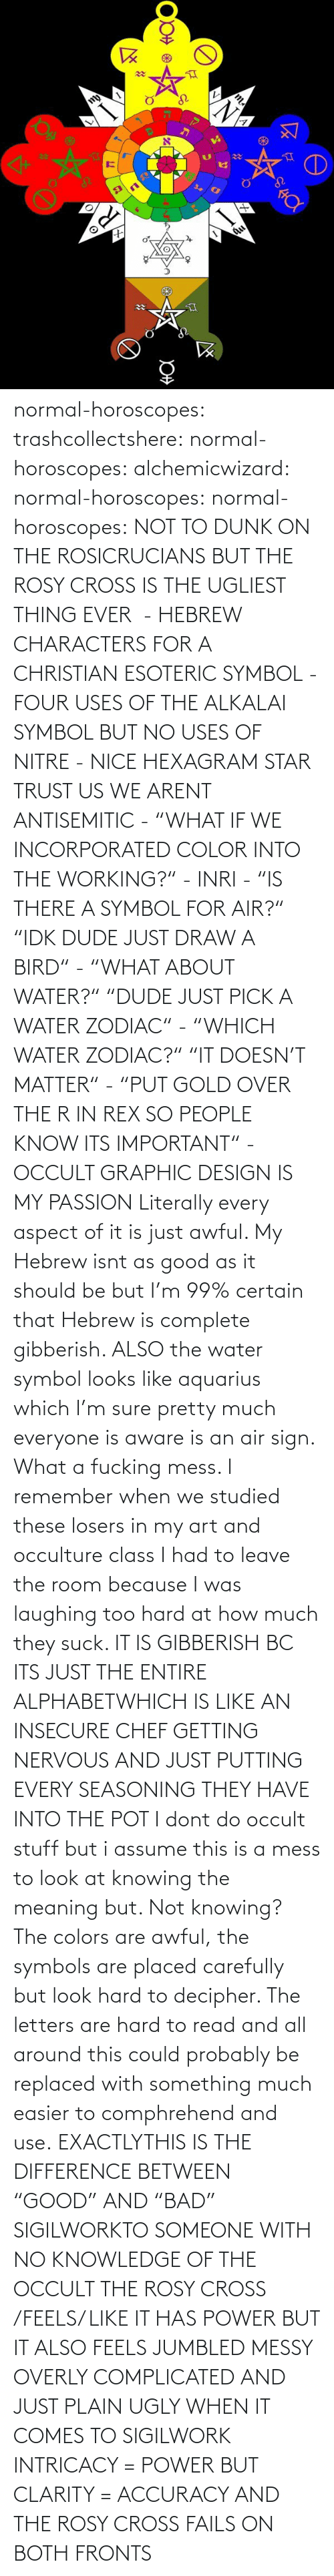 "Cross: normal-horoscopes:  trashcollectshere: normal-horoscopes:   alchemicwizard:  normal-horoscopes:  normal-horoscopes: NOT TO DUNK ON THE ROSICRUCIANS BUT THE ROSY CROSS IS THE UGLIEST THING EVER  - HEBREW CHARACTERS FOR A CHRISTIAN ESOTERIC SYMBOL - FOUR USES OF THE ALKALAI SYMBOL BUT NO USES OF NITRE - NICE HEXAGRAM STAR TRUST US WE ARENT ANTISEMITIC - ""WHAT IF WE INCORPORATED COLOR INTO THE WORKING?"" - INRI - ""IS THERE A SYMBOL FOR AIR?"" ""IDK DUDE JUST DRAW A BIRD"" - ""WHAT ABOUT WATER?"" ""DUDE JUST PICK A WATER ZODIAC"" - ""WHICH WATER ZODIAC?"" ""IT DOESN'T MATTER"" - ""PUT GOLD OVER THE R IN REX SO PEOPLE KNOW ITS IMPORTANT"" - OCCULT GRAPHIC DESIGN IS MY PASSION  Literally every aspect of it is just awful. My Hebrew isnt as good as it should be but I'm 99% certain that Hebrew is complete gibberish.  ALSO the water symbol looks like aquarius which I'm sure pretty much everyone is aware is an air sign. What a fucking mess.  I remember when we studied these losers in my art and occulture class I had to leave the room because I was laughing too hard at how much they suck.   IT IS GIBBERISH BC ITS JUST THE ENTIRE ALPHABETWHICH IS LIKE AN INSECURE CHEF GETTING NERVOUS AND JUST PUTTING EVERY SEASONING THEY HAVE INTO THE POT     I dont do occult stuff but i assume this is a mess to look at knowing the meaning but. Not knowing? The colors are awful, the symbols are placed carefully but look hard to decipher. The letters are hard to read and all around this could probably be replaced with something much easier to comphrehend and use.  EXACTLYTHIS IS THE DIFFERENCE BETWEEN ""GOOD"" AND ""BAD"" SIGILWORKTO SOMEONE WITH NO KNOWLEDGE OF THE OCCULT THE ROSY CROSS /FEELS/ LIKE IT HAS POWER BUT IT ALSO FEELS JUMBLED MESSY OVERLY COMPLICATED AND JUST PLAIN UGLY WHEN IT COMES TO SIGILWORK INTRICACY = POWER BUT CLARITY = ACCURACY AND THE ROSY CROSS FAILS ON BOTH FRONTS"